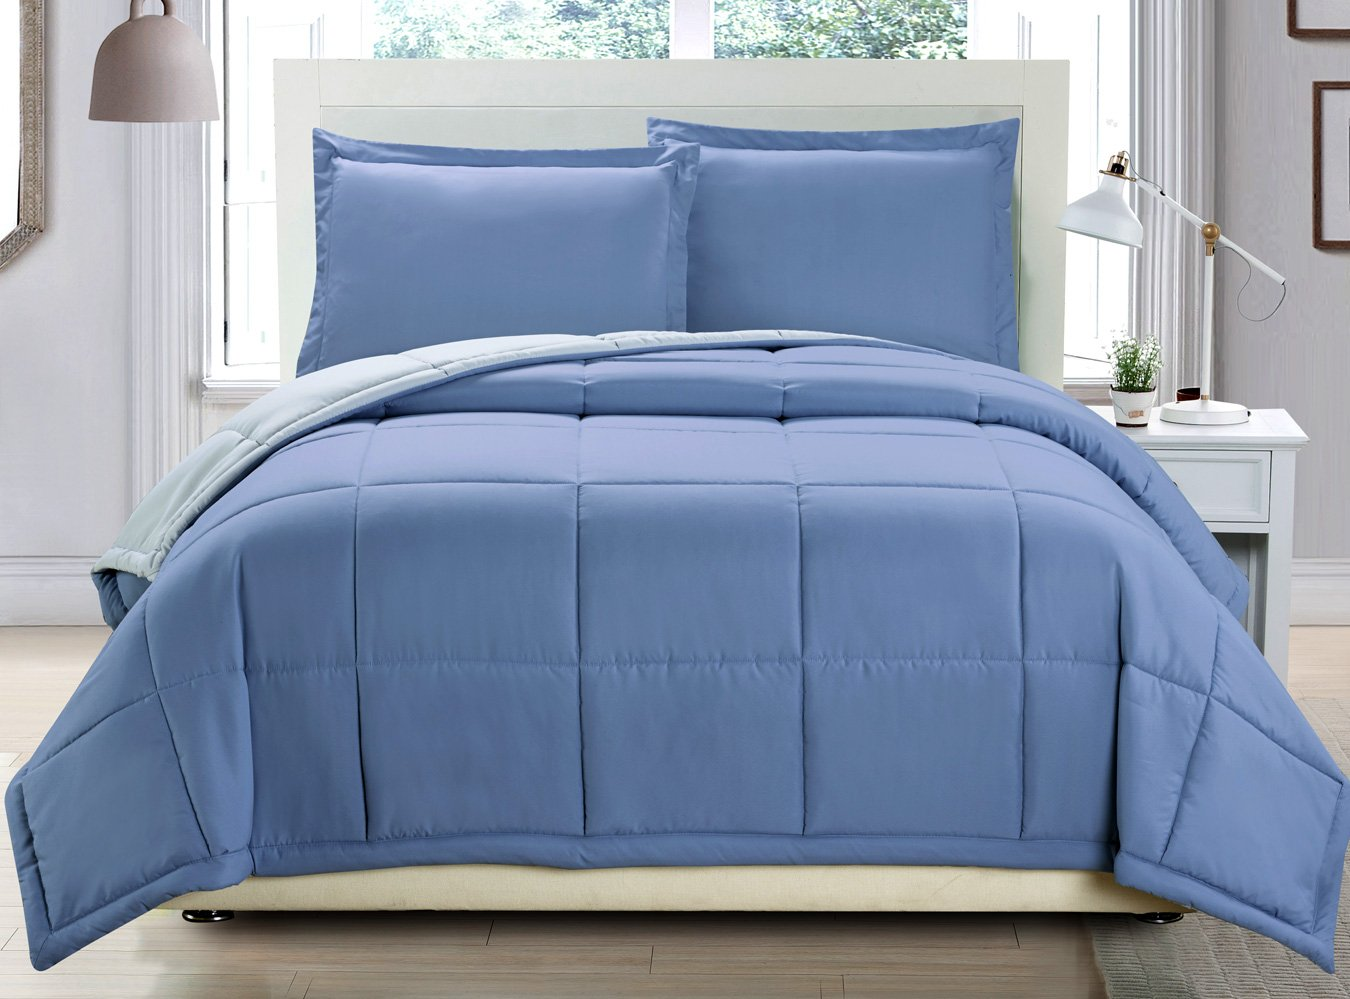 3 piece Luxury Spa Blue / Grey Reversible Goose Down Alternative Comforter set